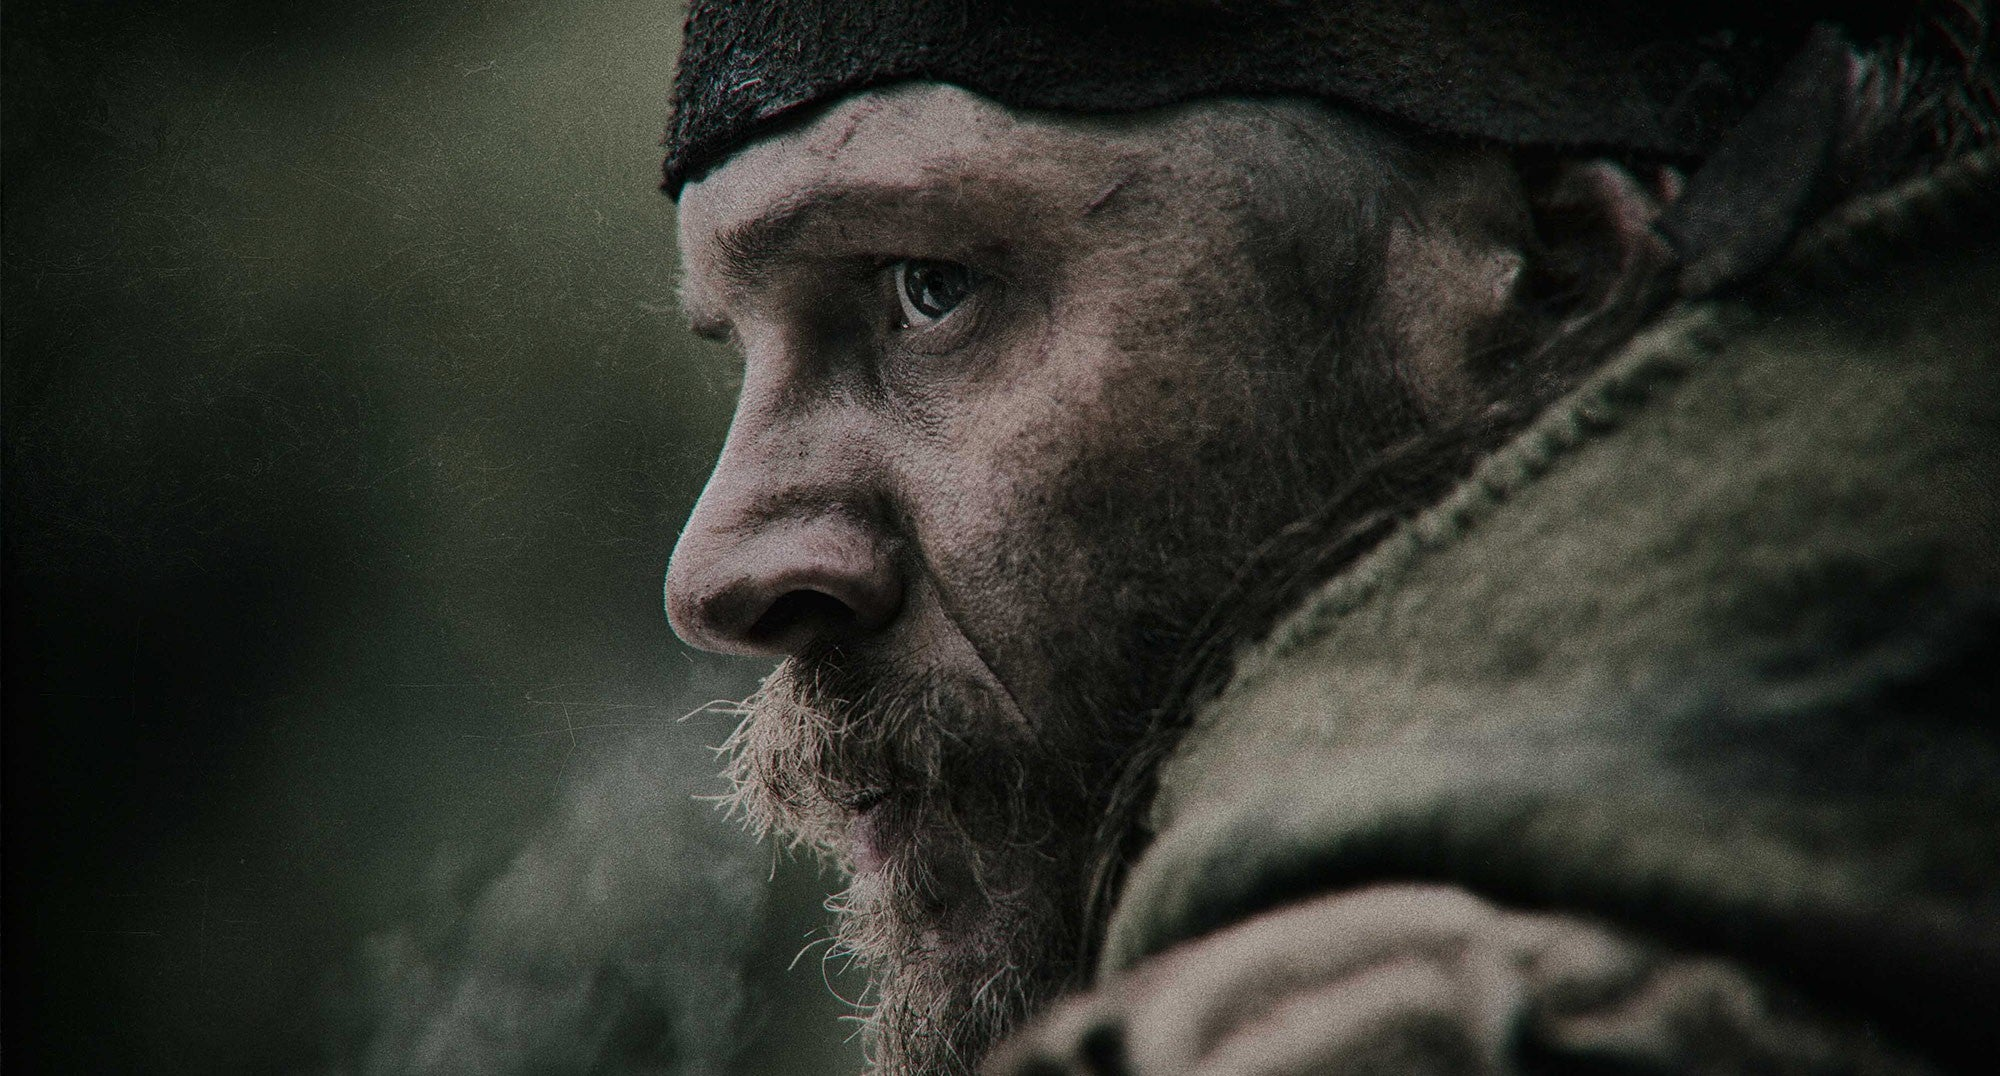 http://static.independent.co.uk/s3fs-public/thumbnails/image/2015/12/22/14/revenant-tom-hardy.jpg